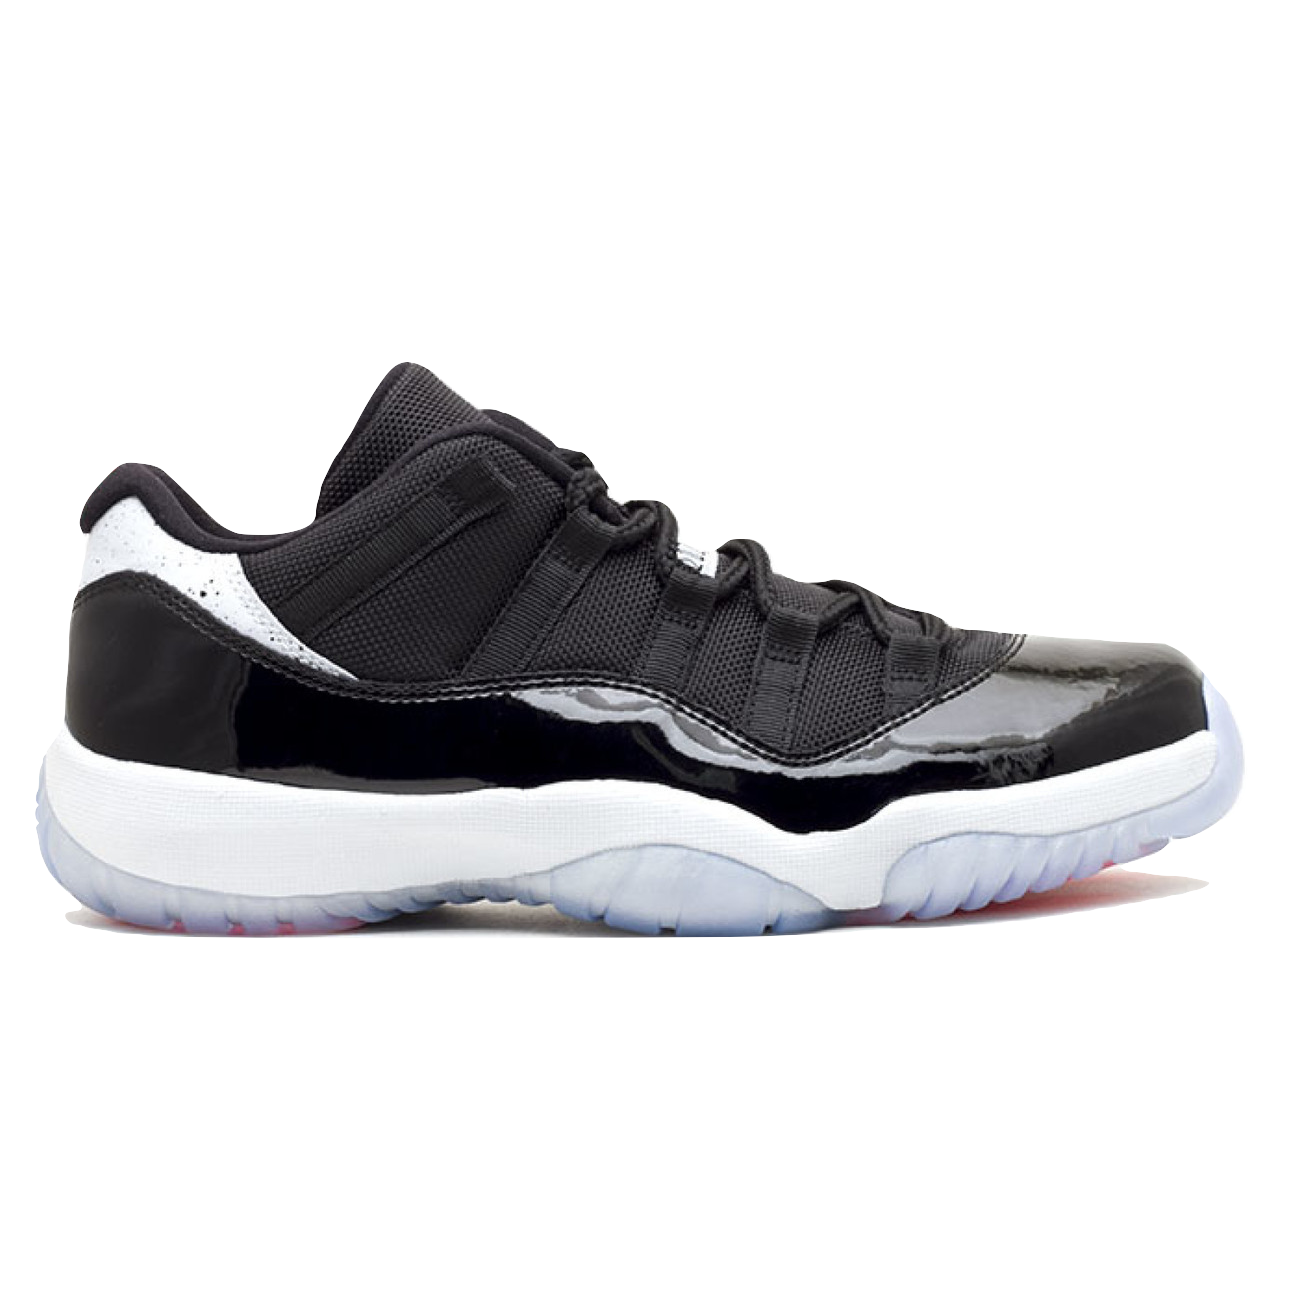 Air Jordan 11 Retro Low BG - Infrared 23